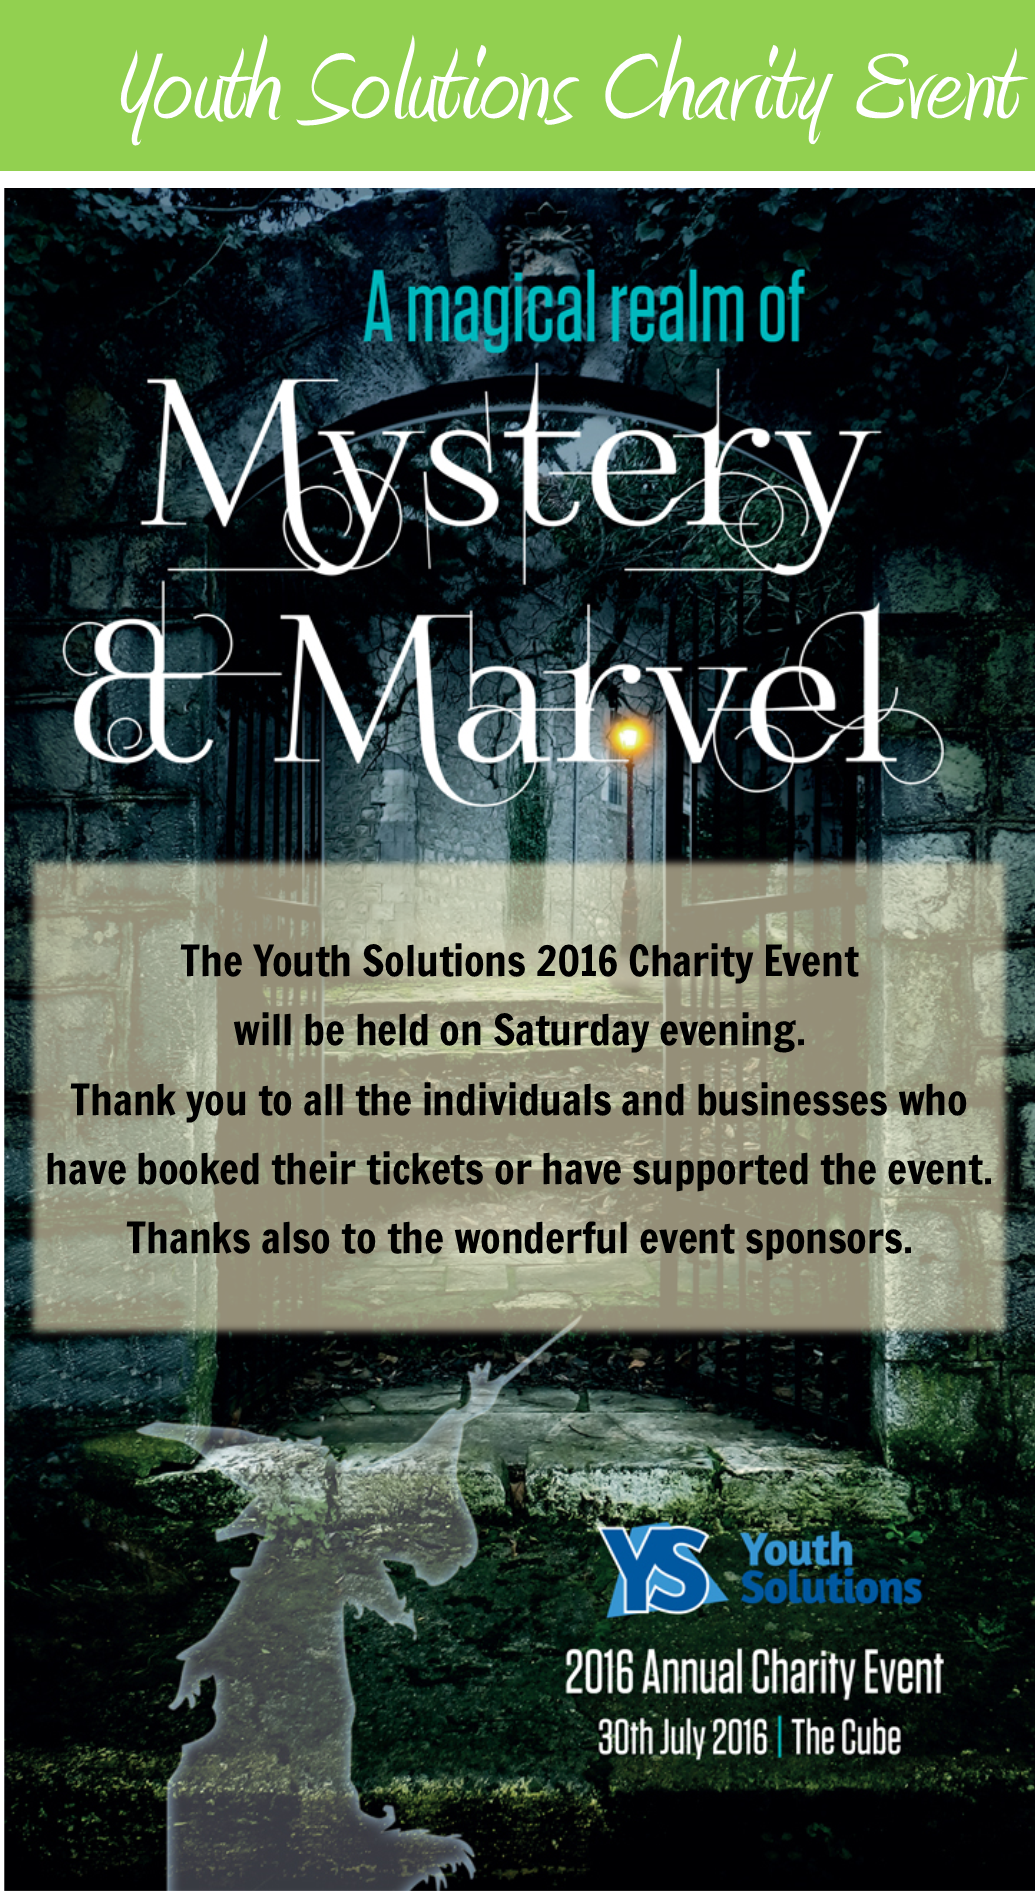 Youth Solutions Charity Event Sponsors